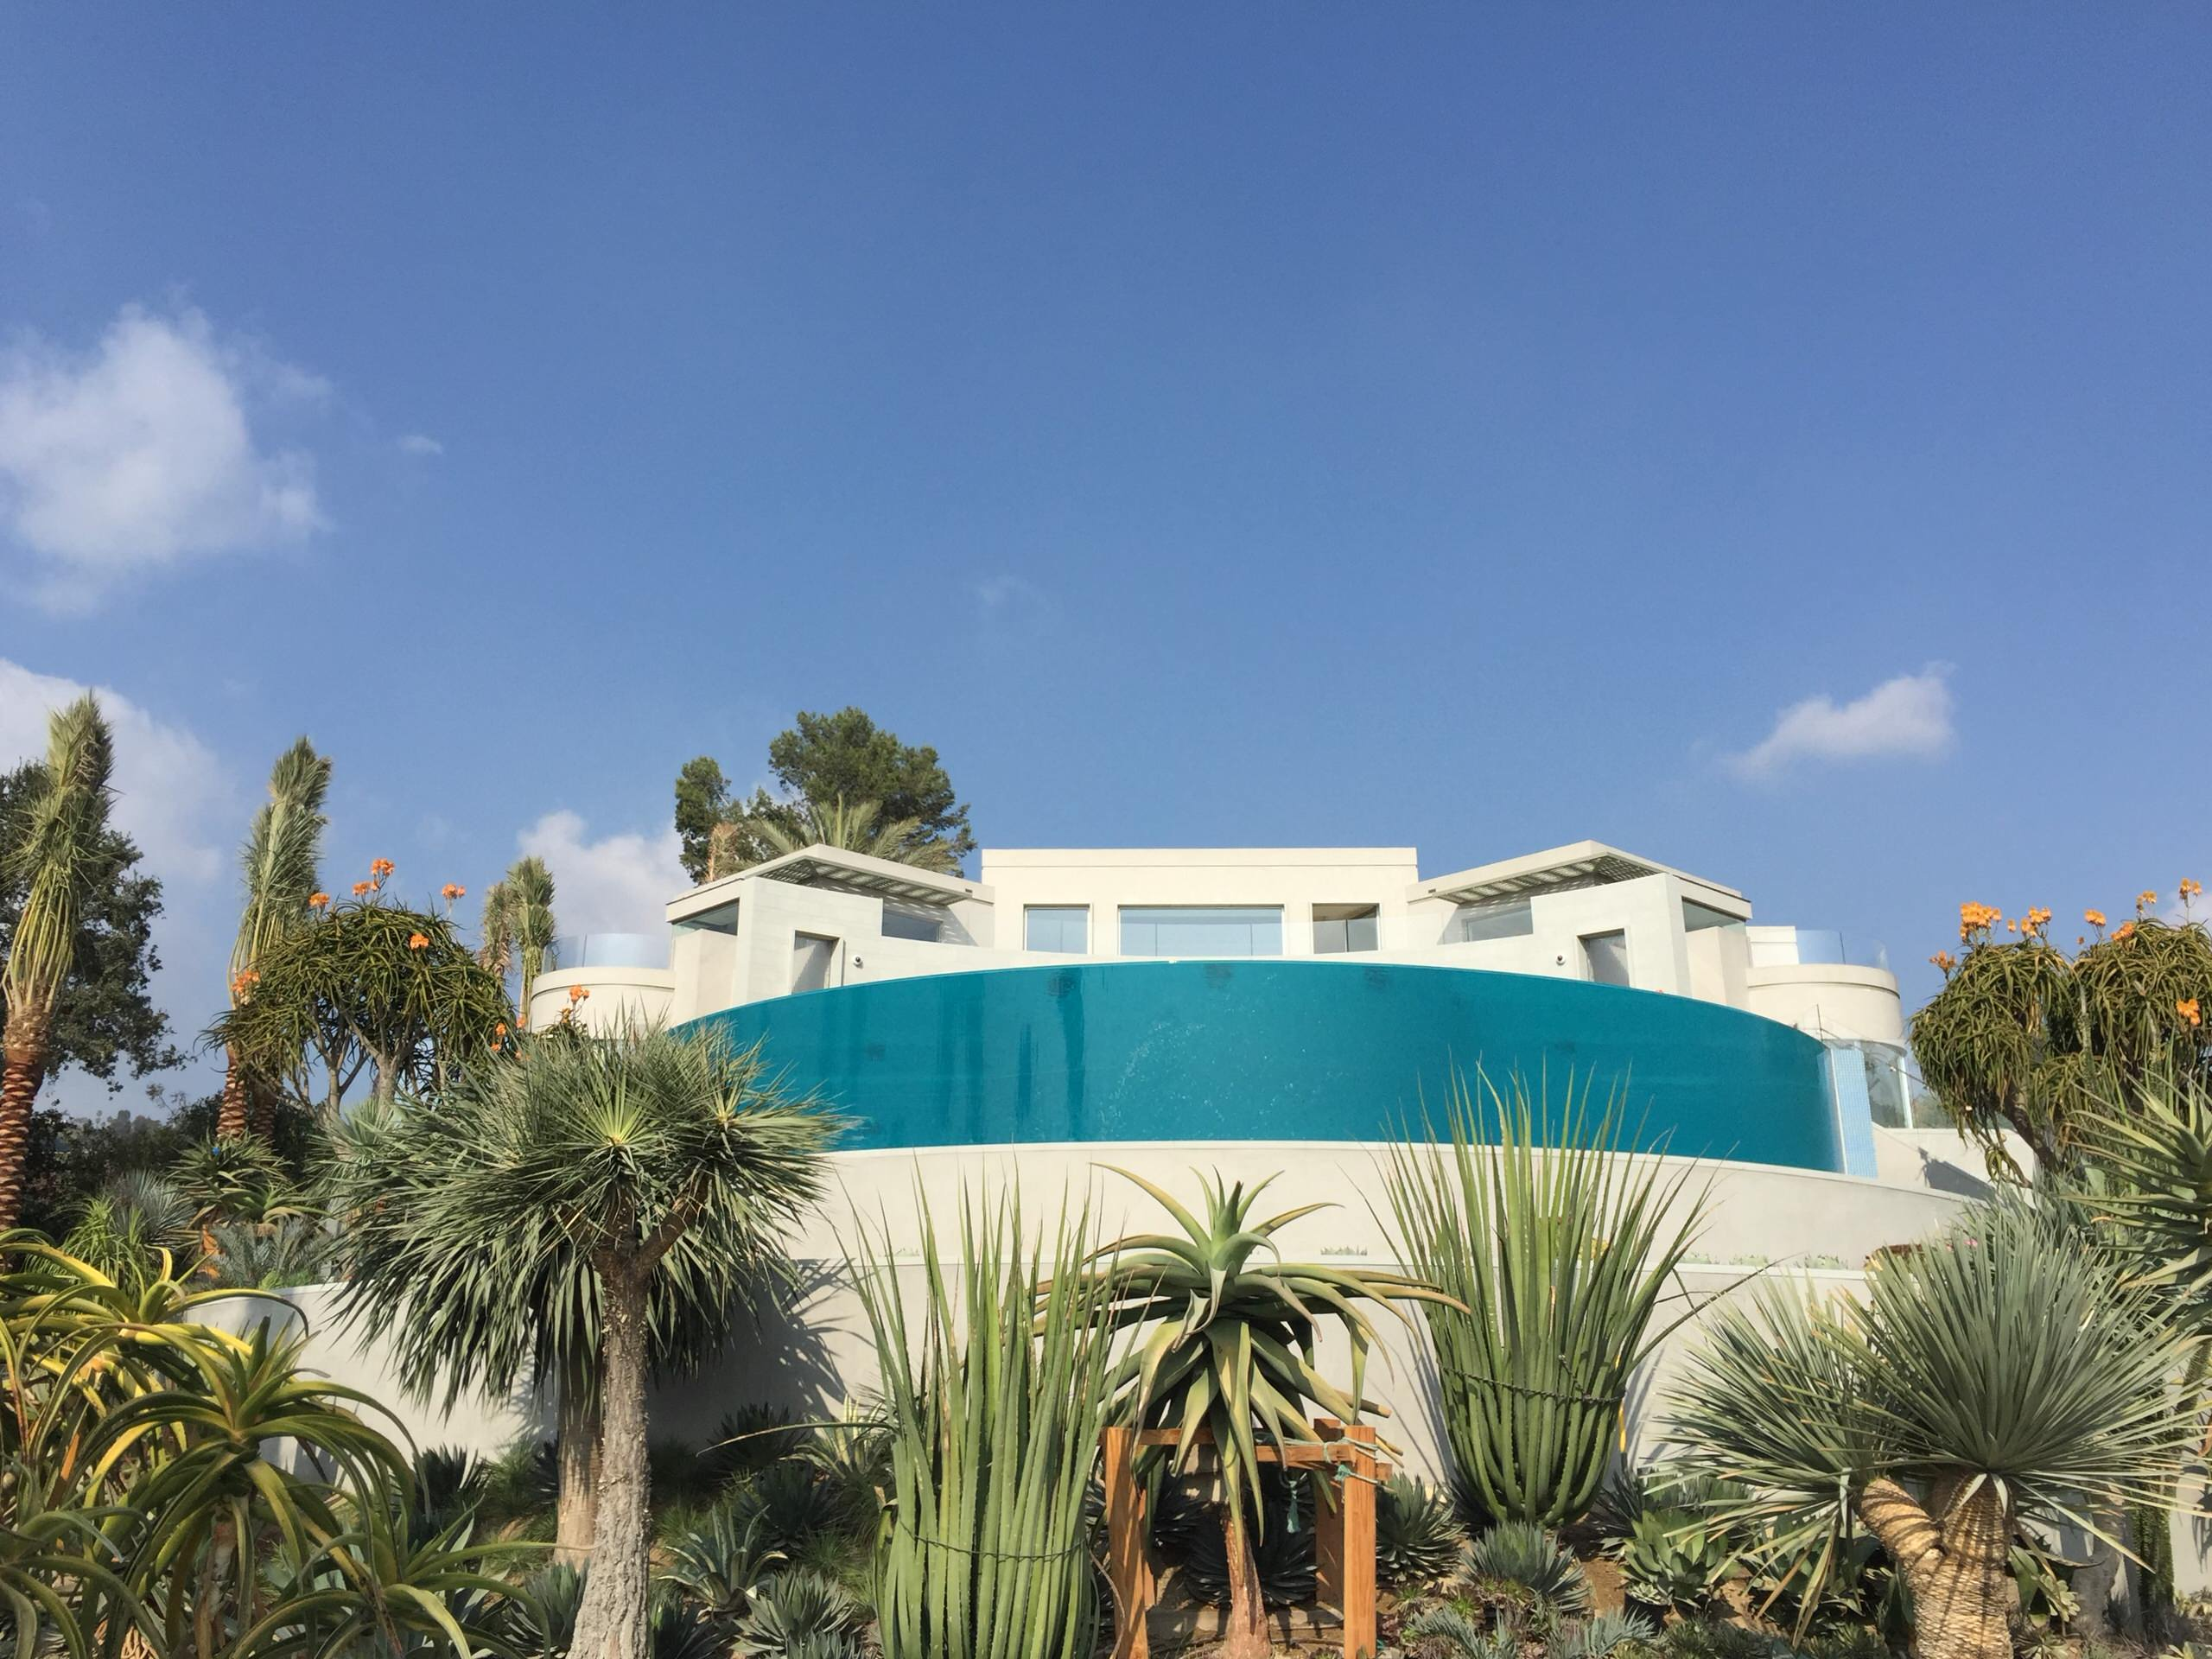 Beverly Hills - Hillside Infinity Pool with 180 Acrylic Wall